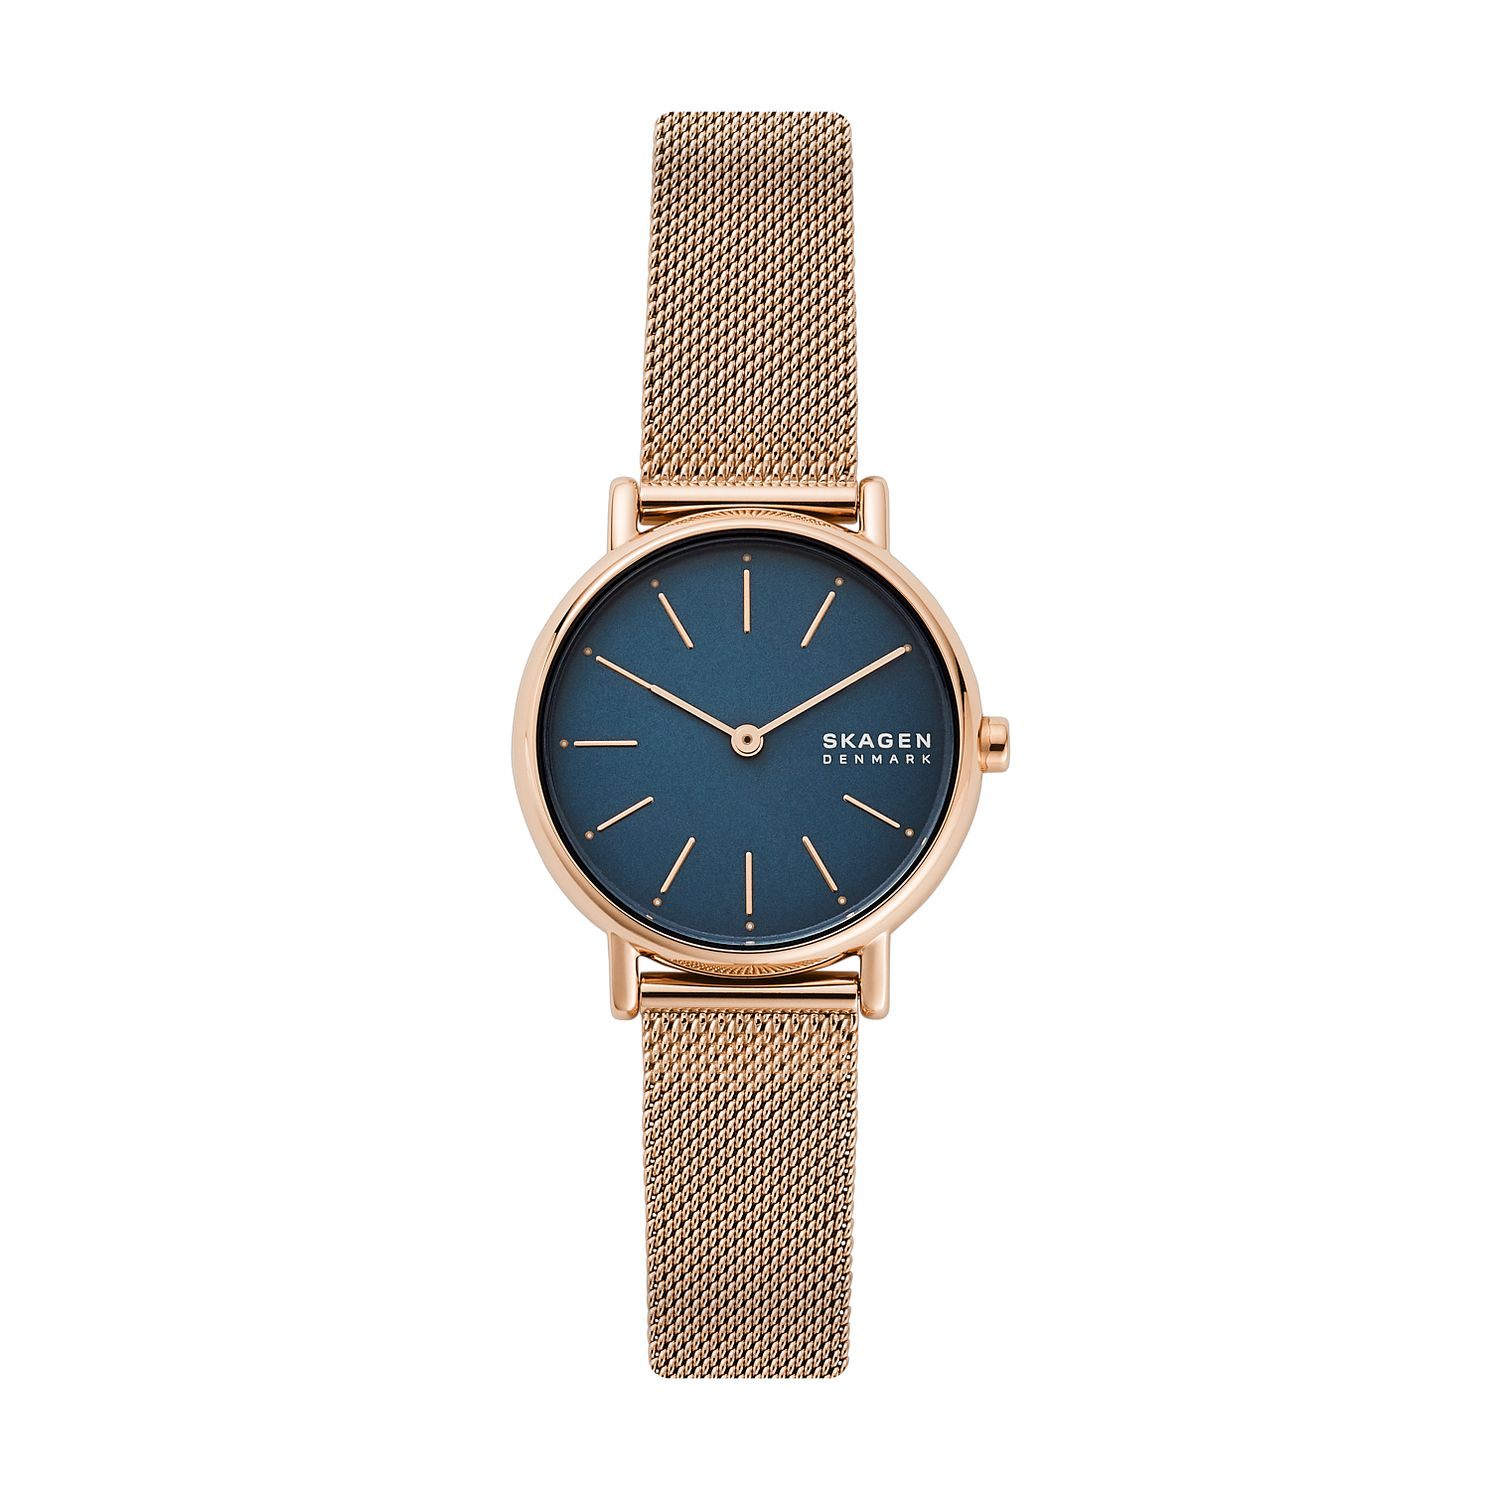 Skagen Ladies' Blue Dial Rose Gold Tone Mesh Bracelet Watch - Product number 4012011